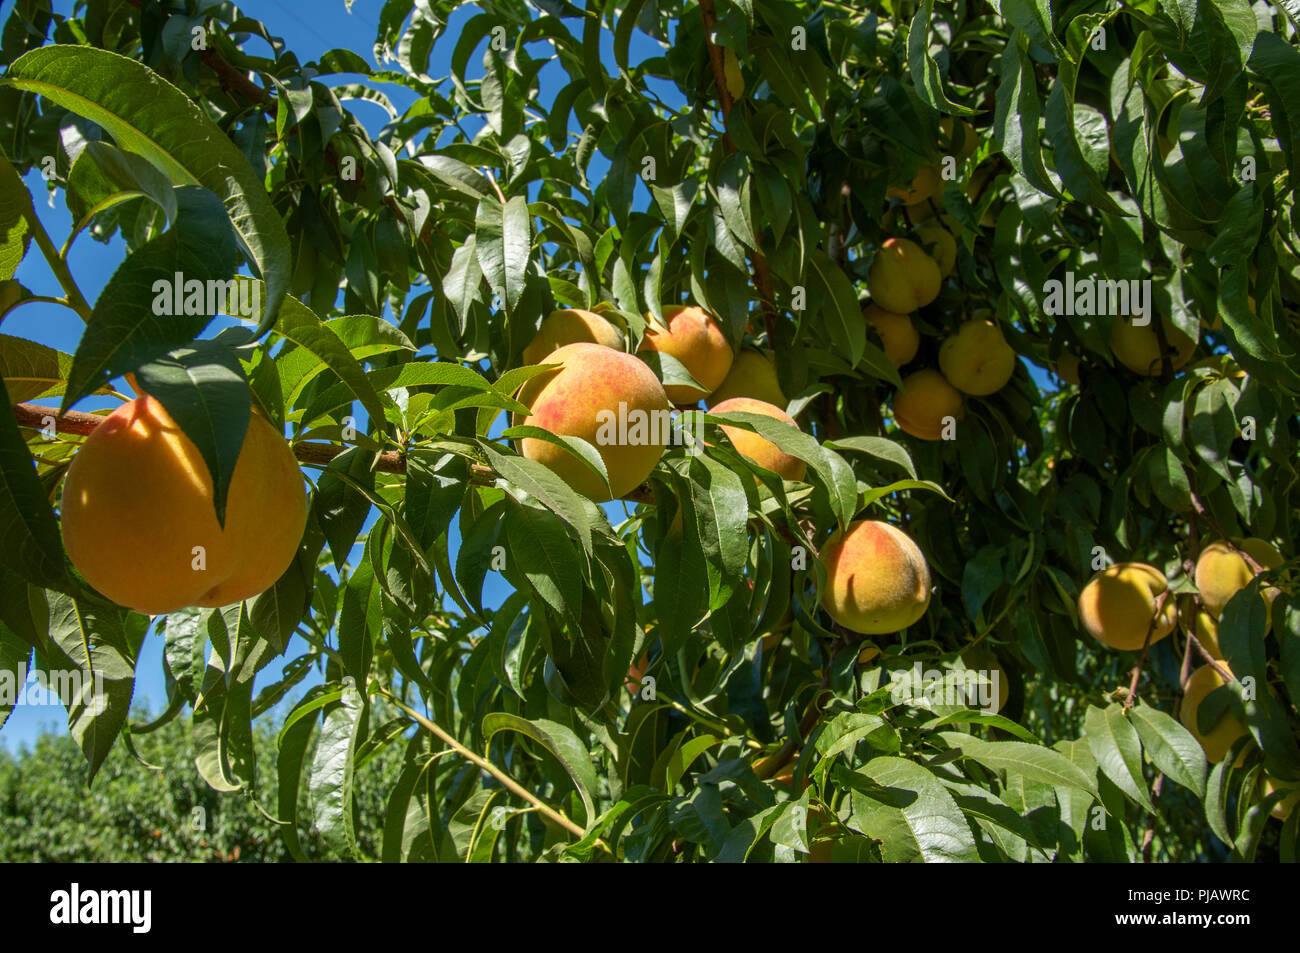 Peach orchrd, central California - Stock Image